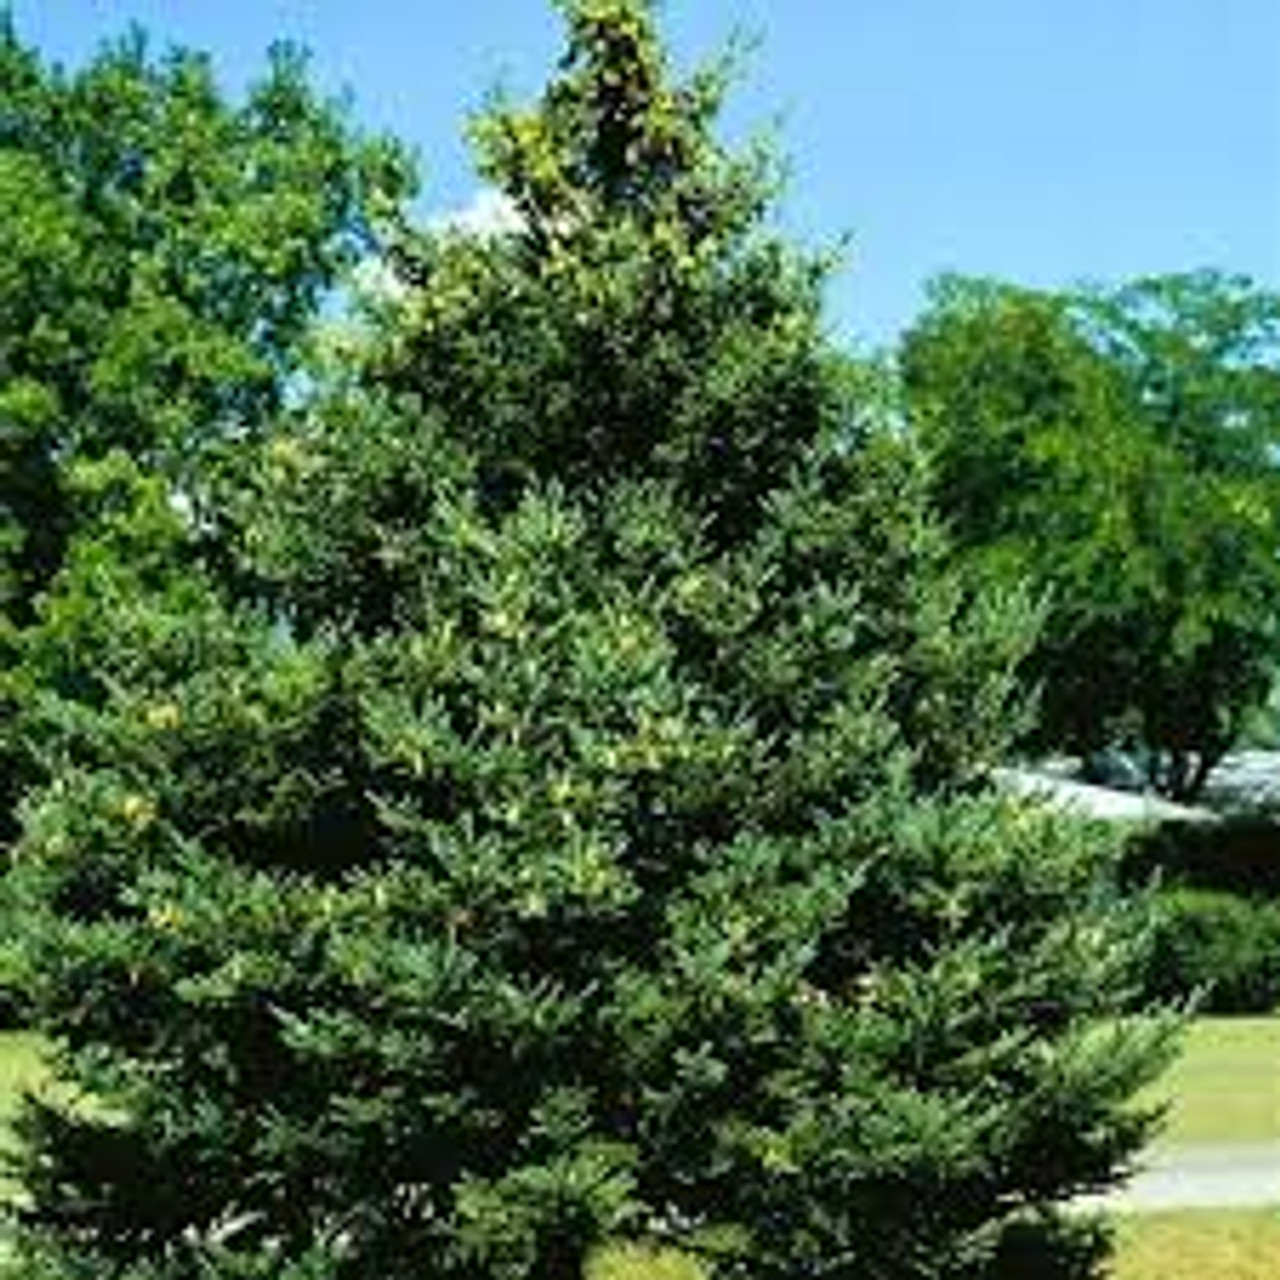 Buy Picea Glauca White Spruce Seeds Online In Usa Picea Glauca White Spruce Seeds Price Treehelp Com